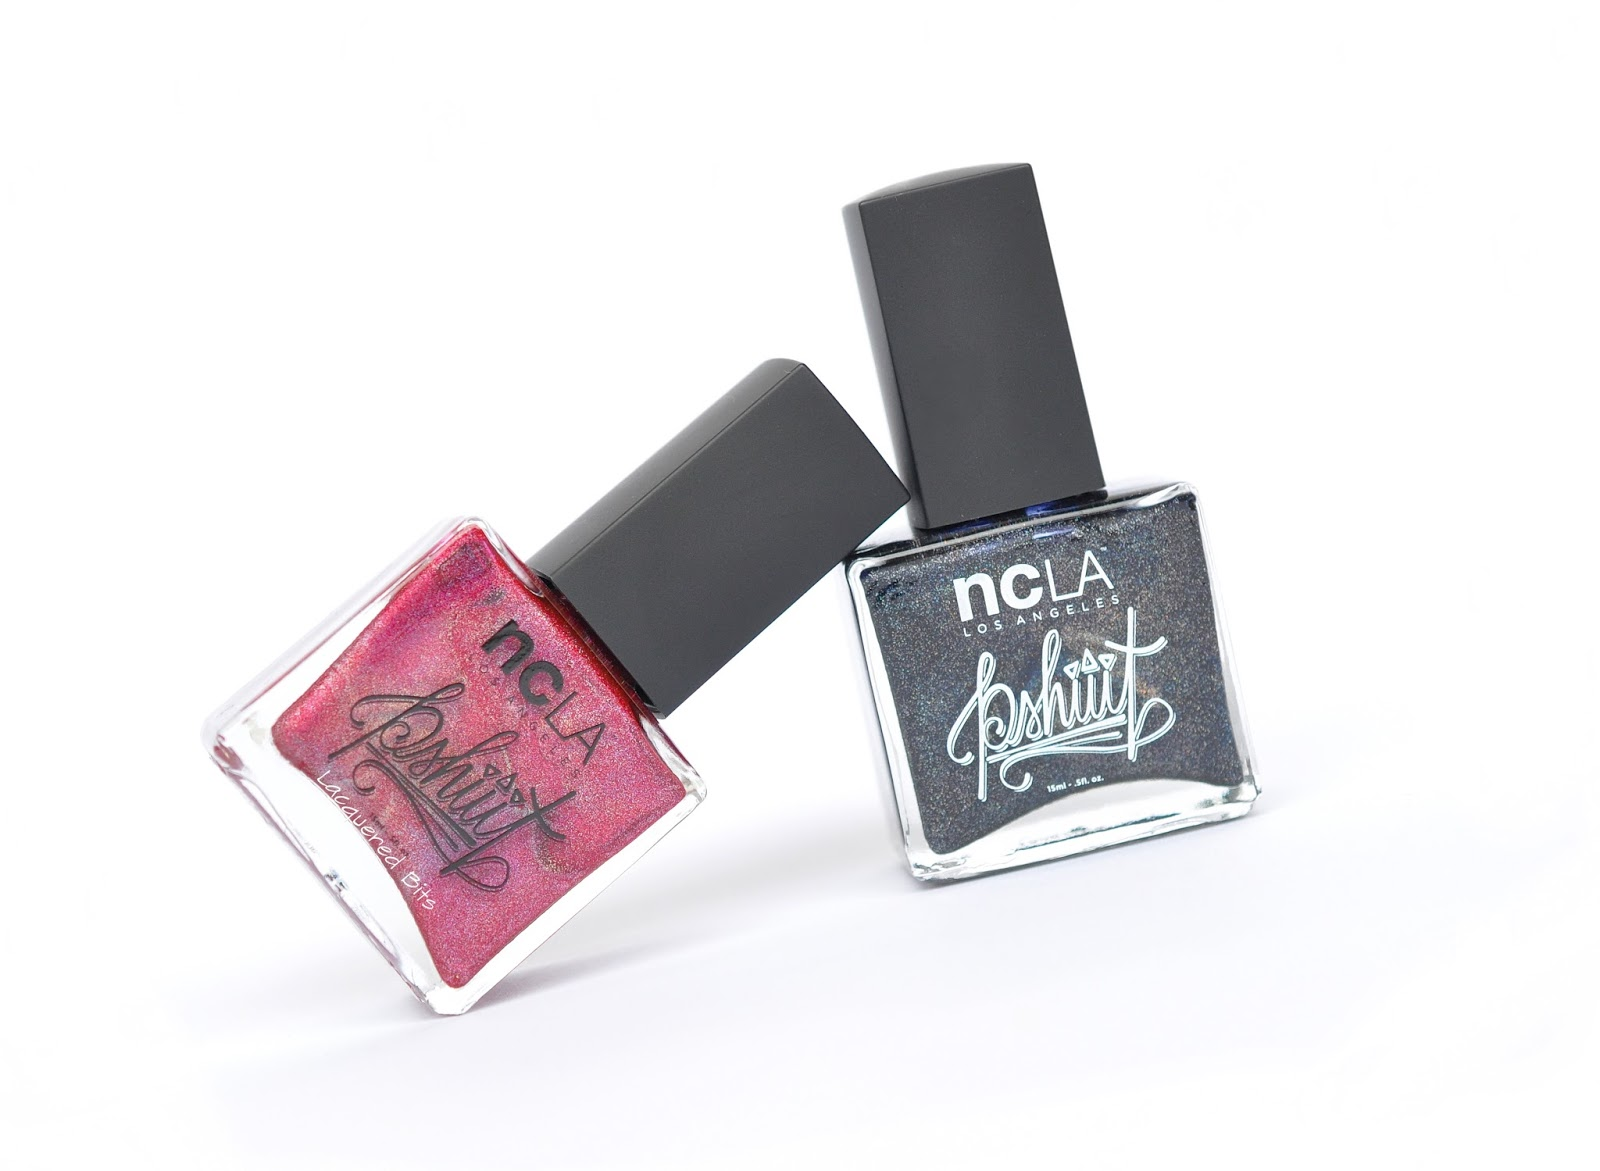 ncLA & Pshiiit - Redicalist & Wandering Stars - Swatches & Review